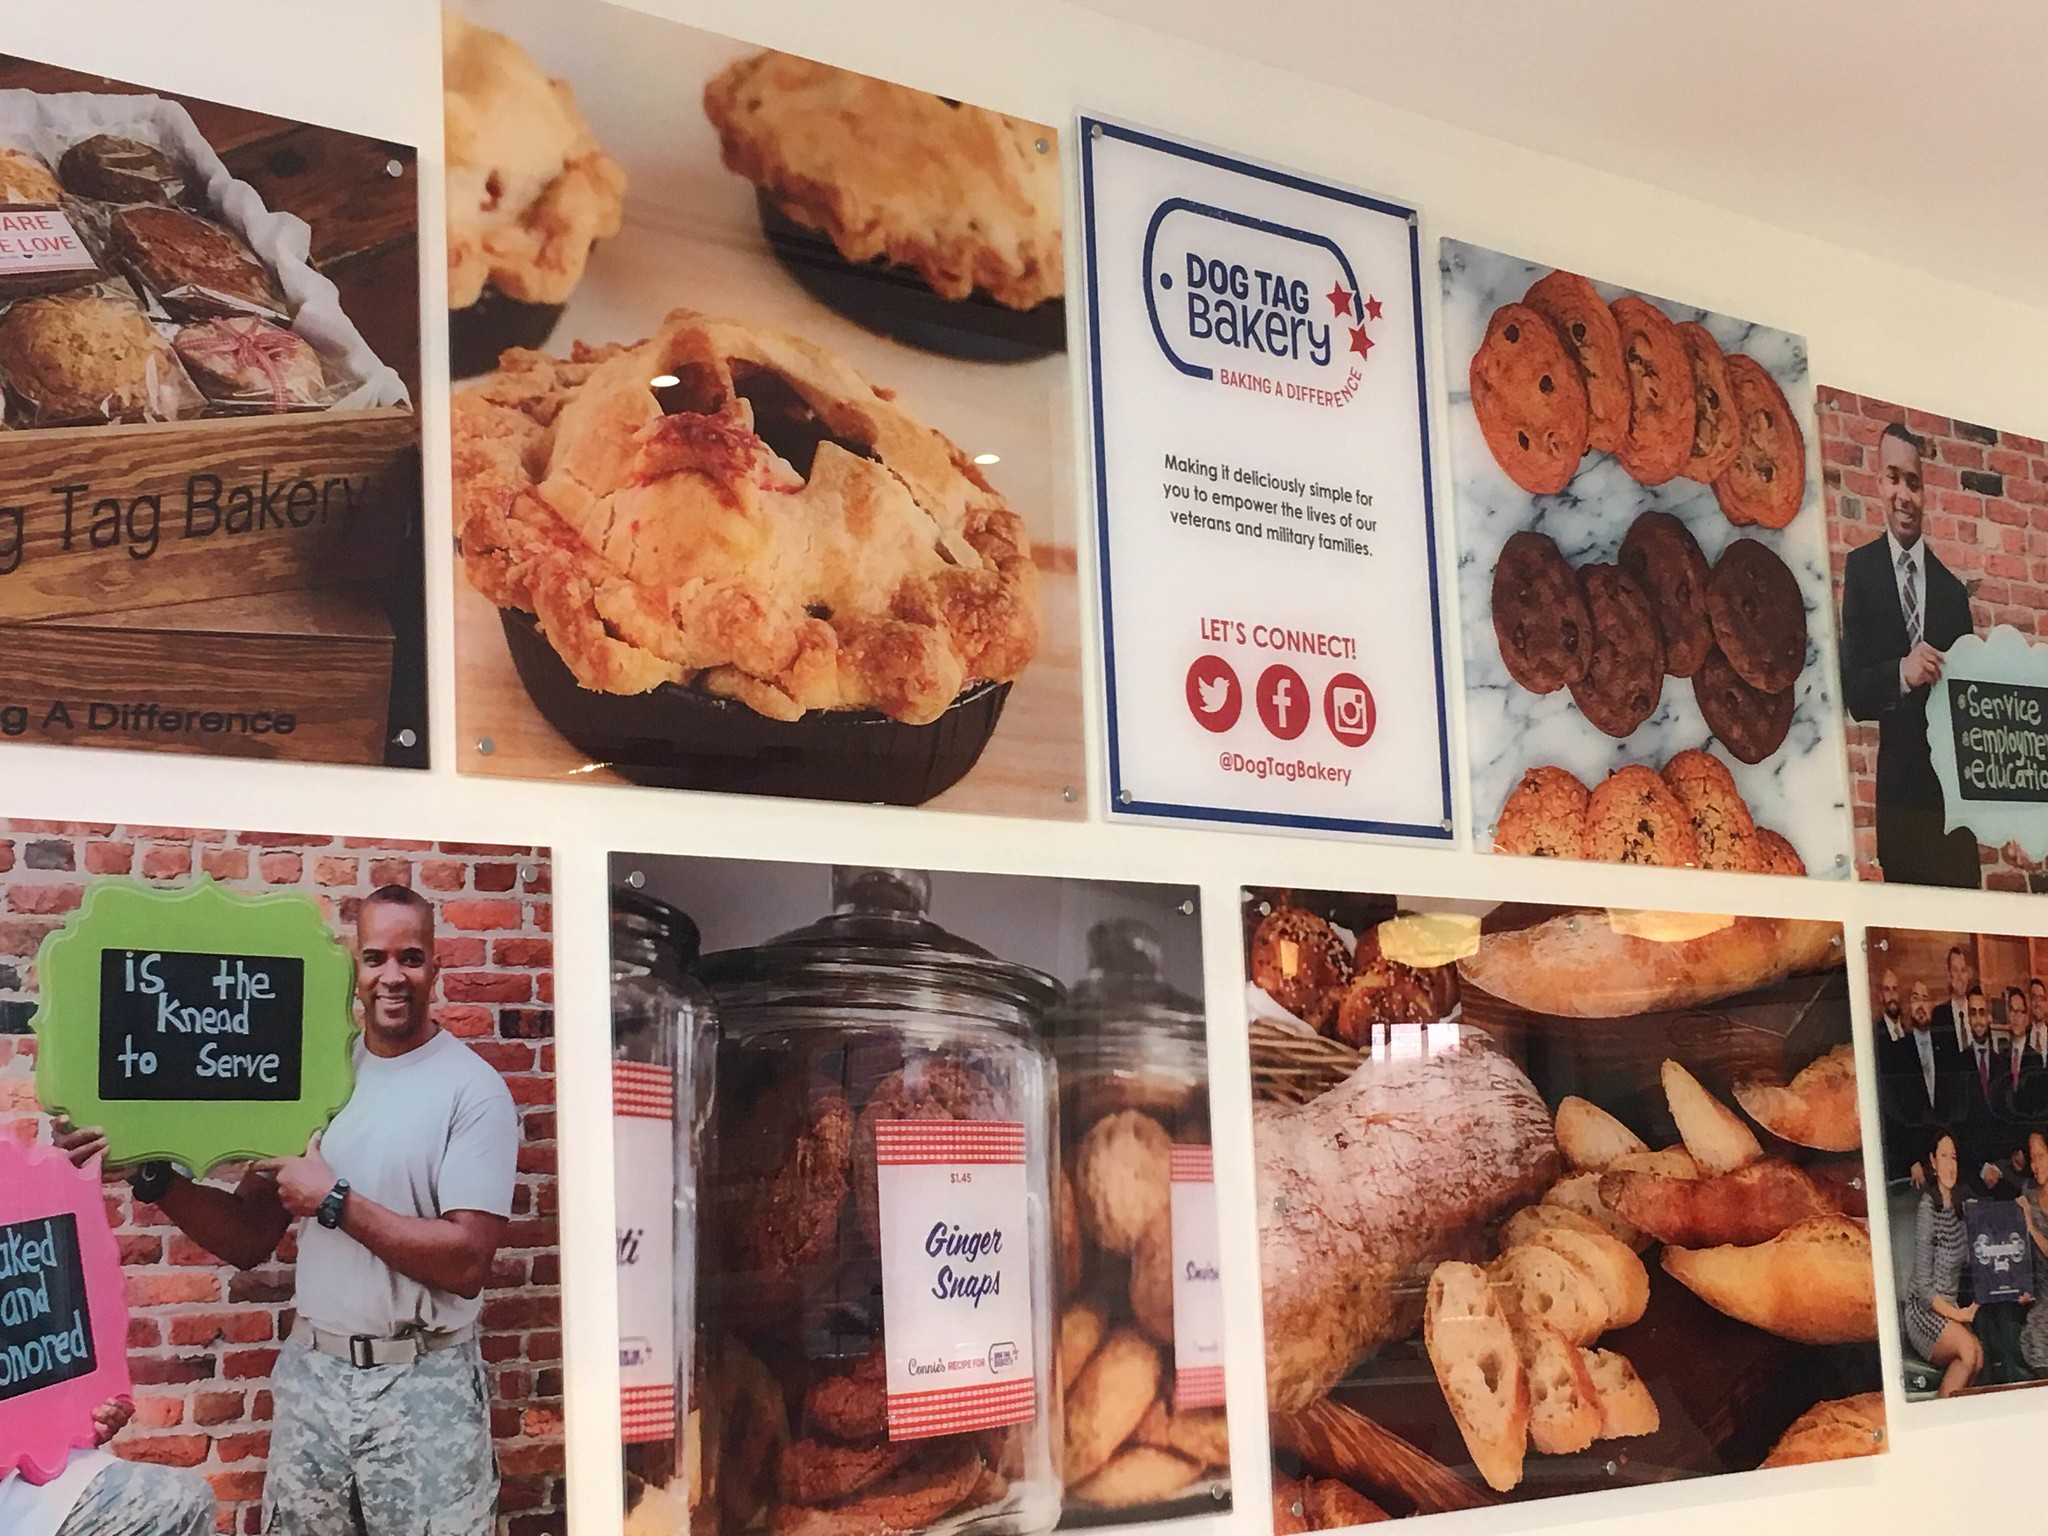 A photo display featuring images of baked goods and people holding chalkboards with messages related to the organization's mission.